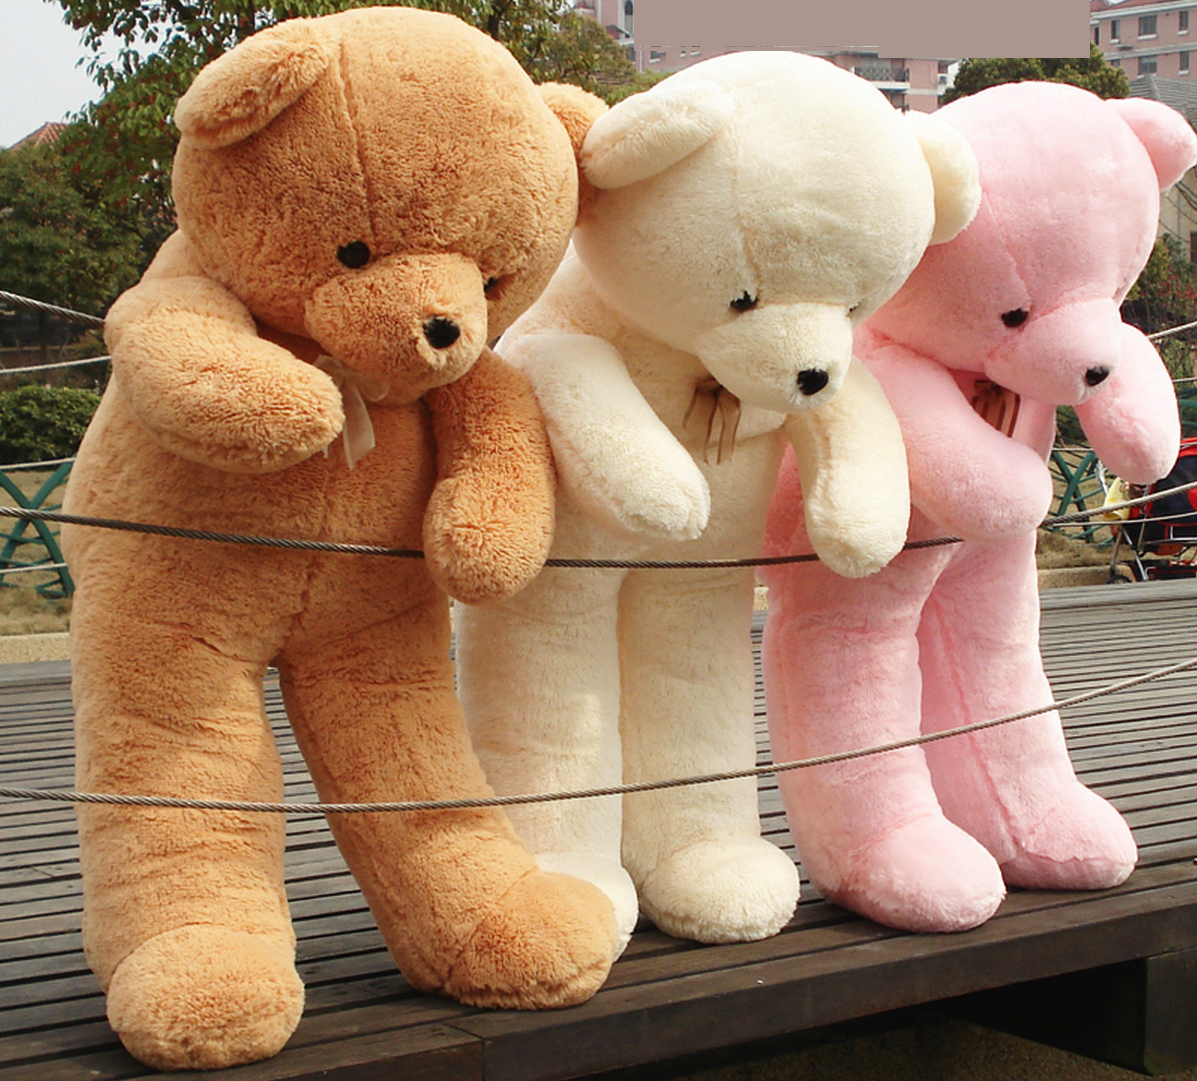 Free Shipping Plush Toys Giant Teddy Bears on Luulla